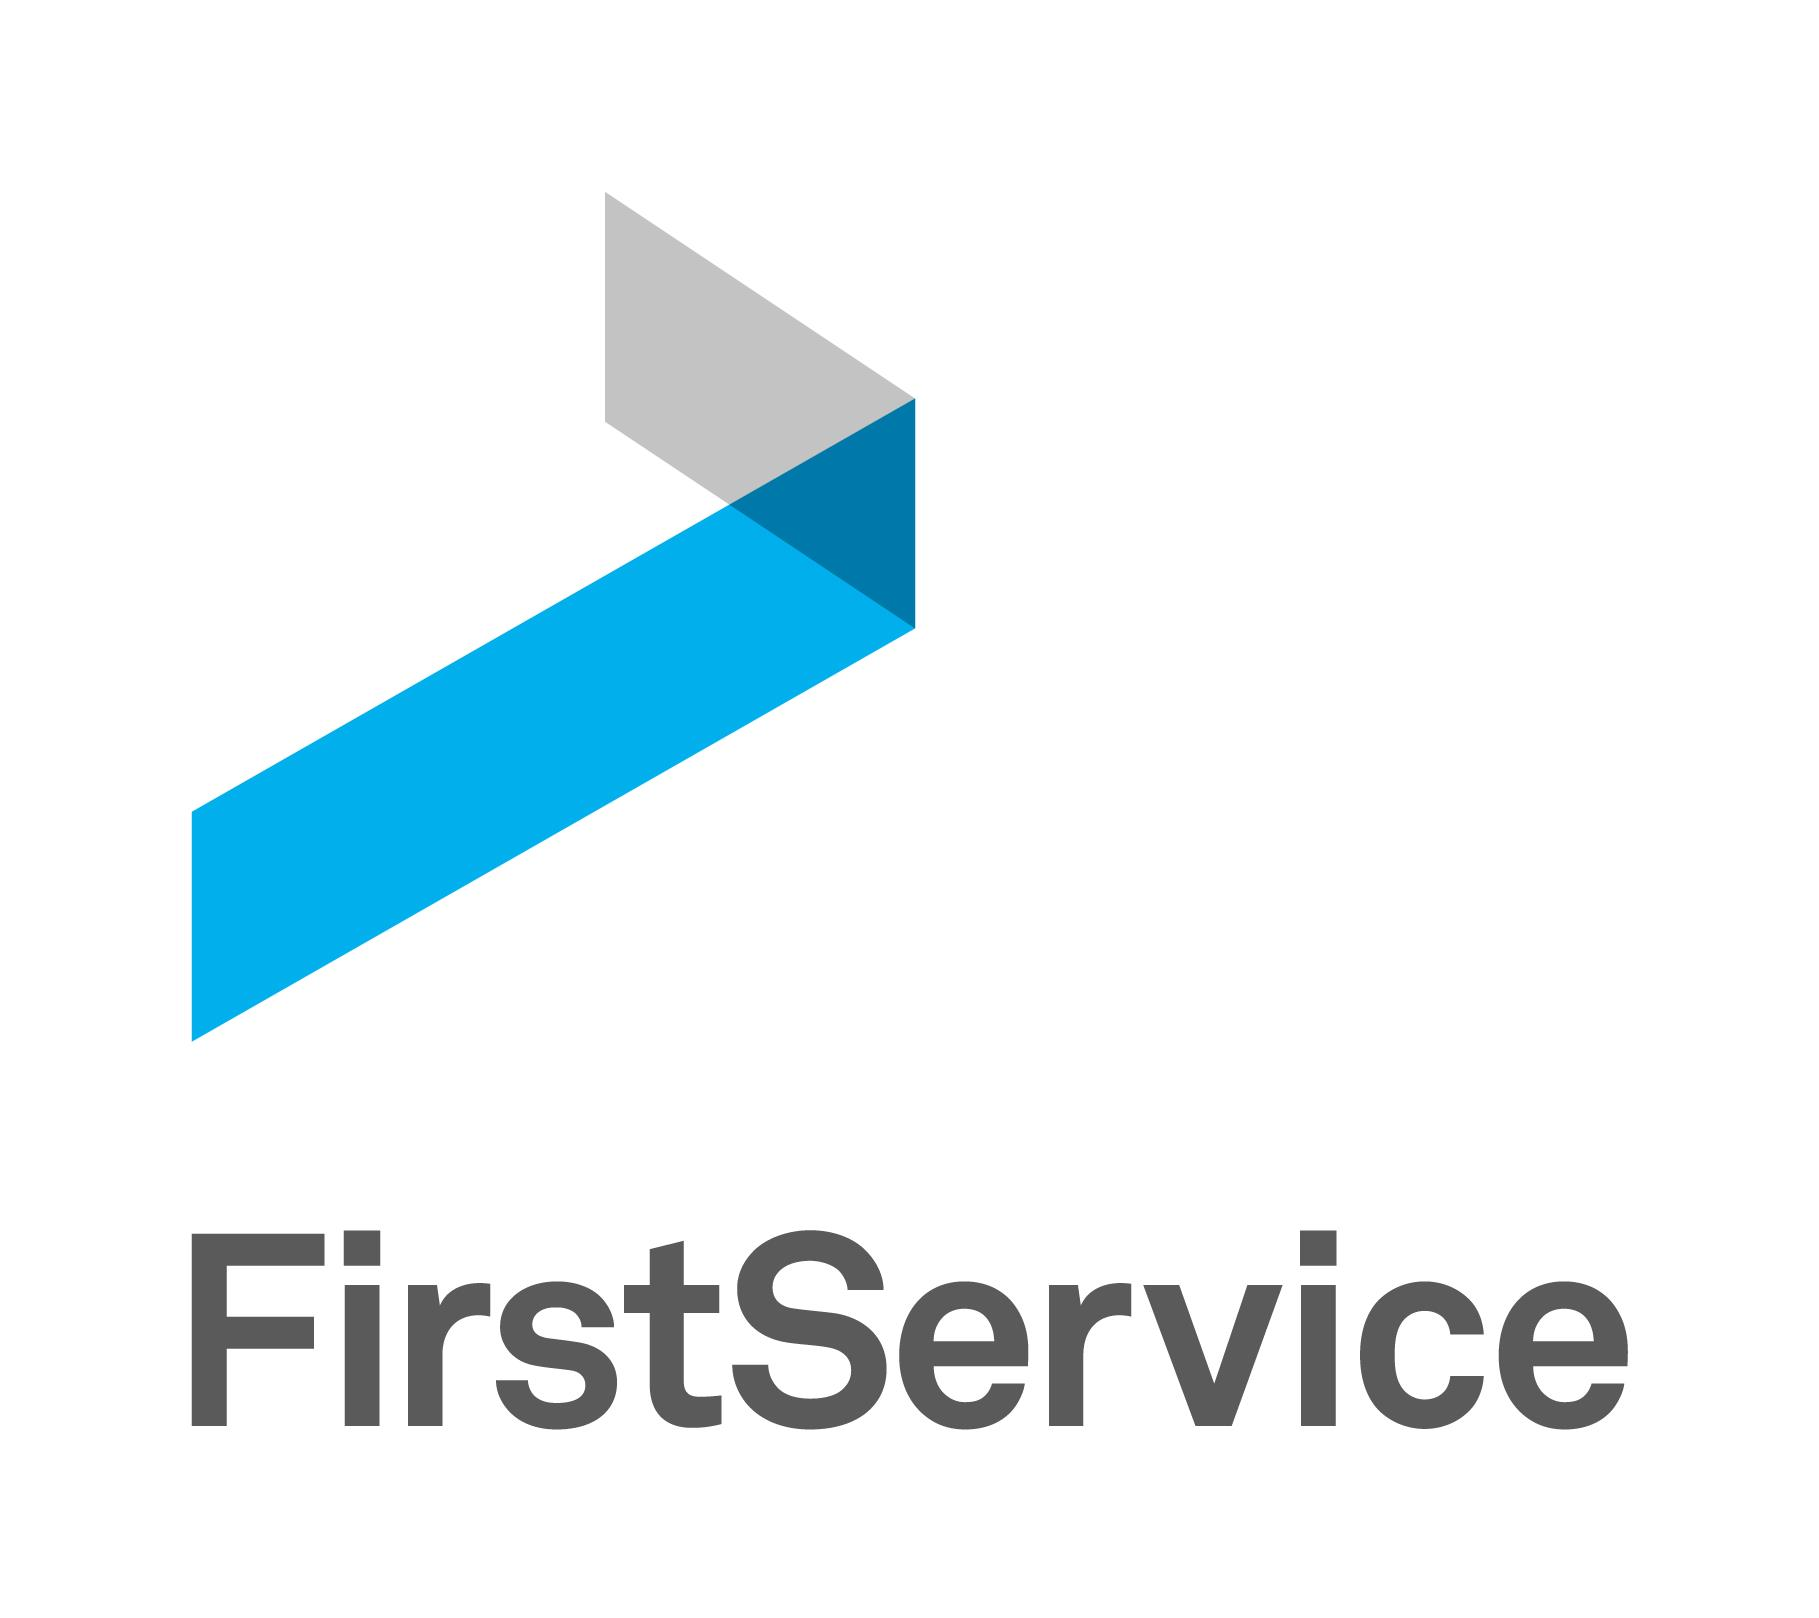 FirstService logo